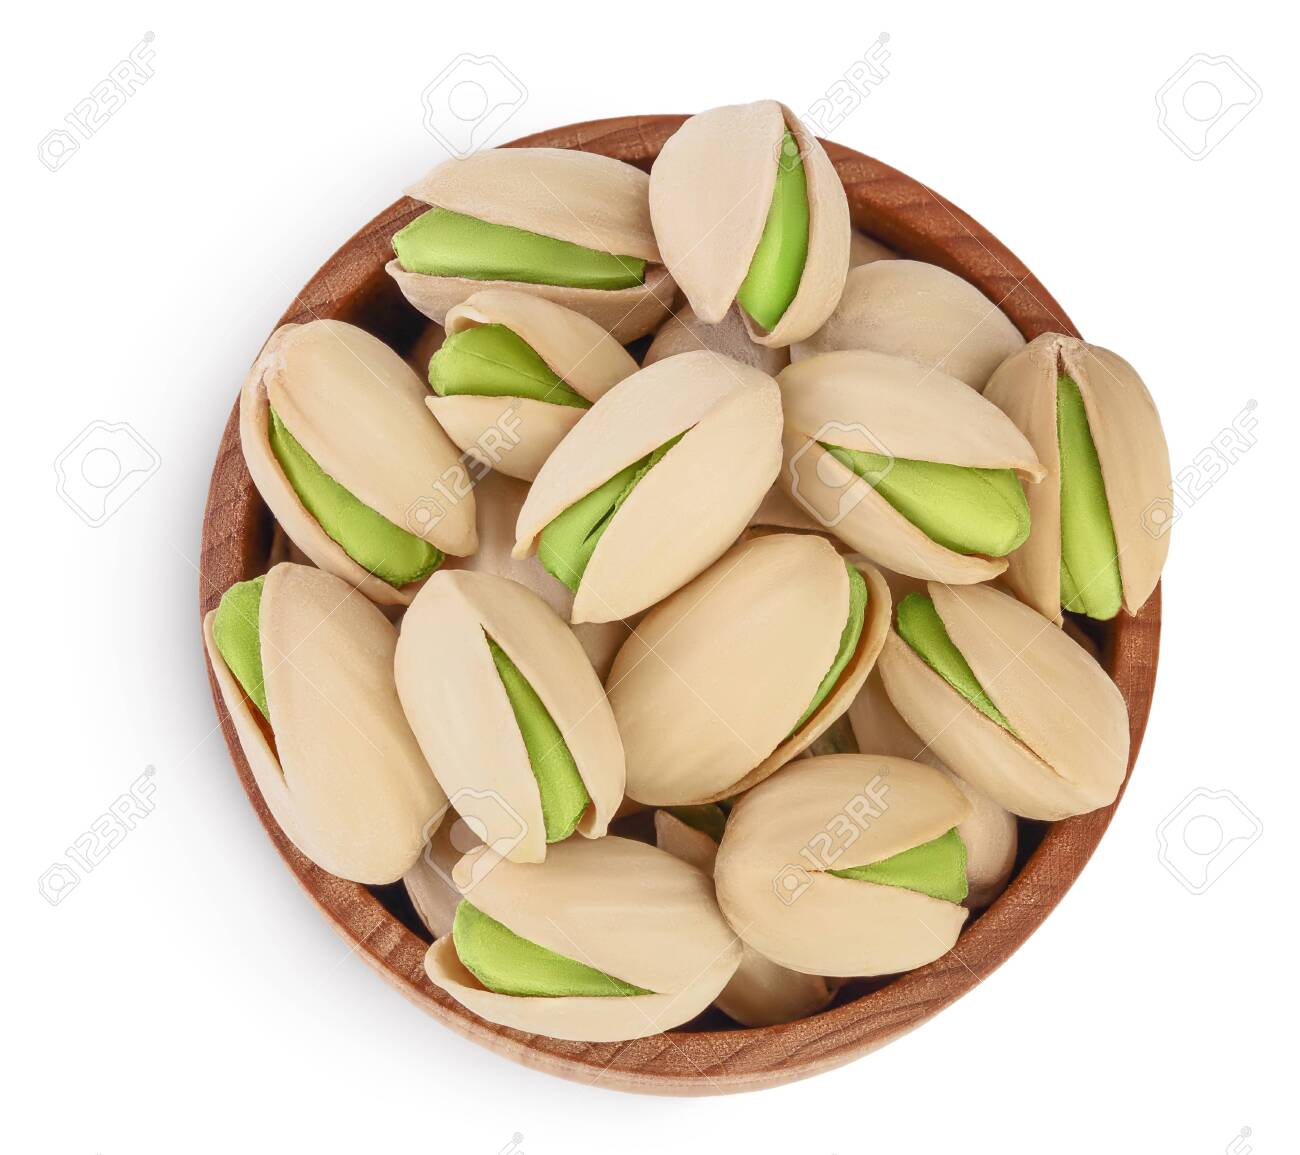 pistachio in wooden bowl isolated on white background with clipping path and full depth of field. Top view. Flat lay - 142820411